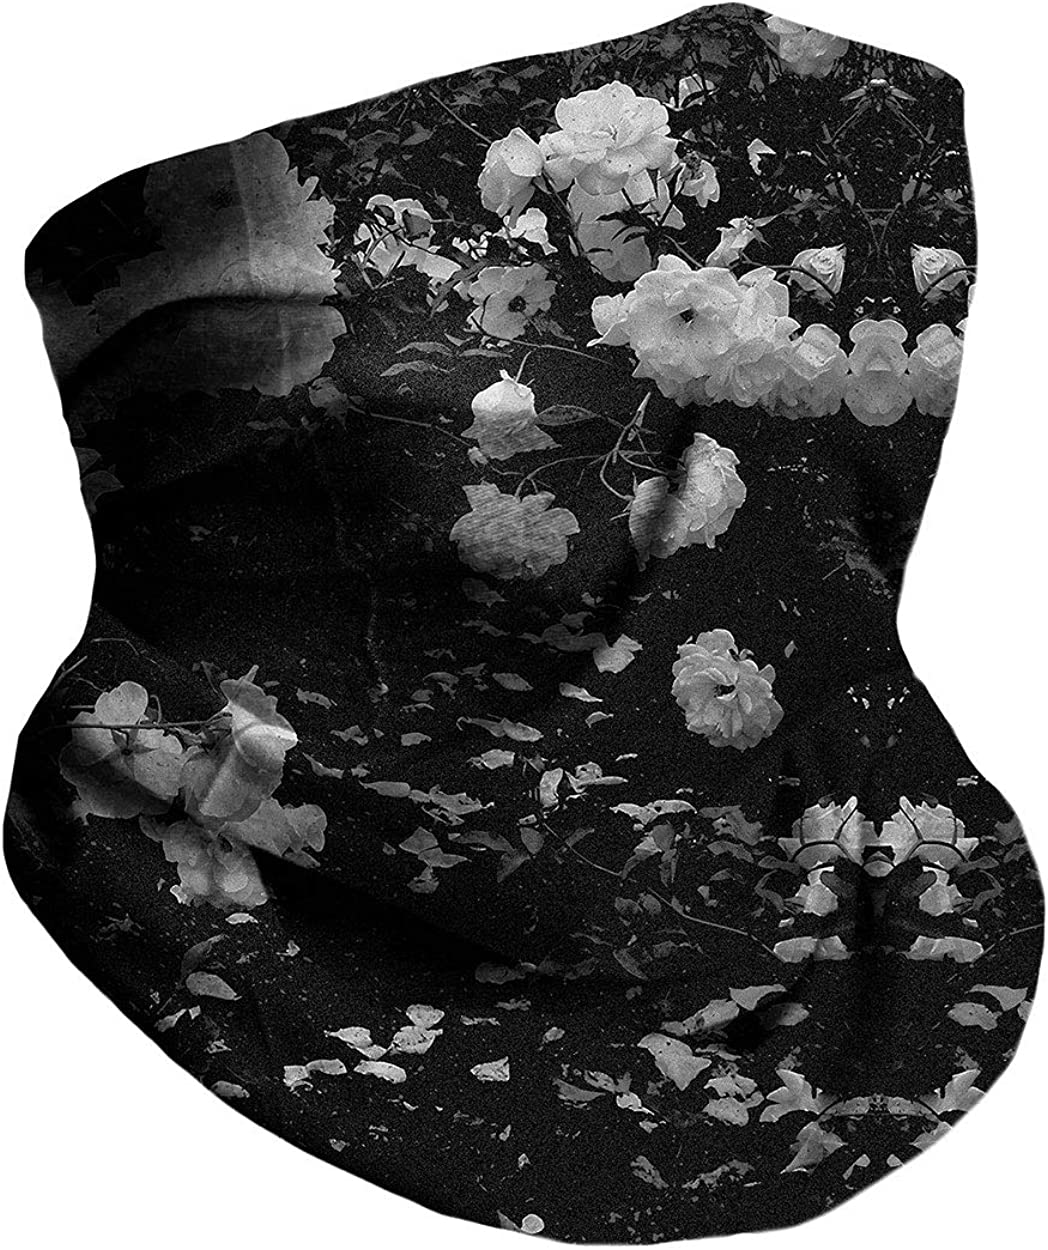 Into the Am Black Rose Multi-Functional Face Cover Seamless Bandana: Clothing